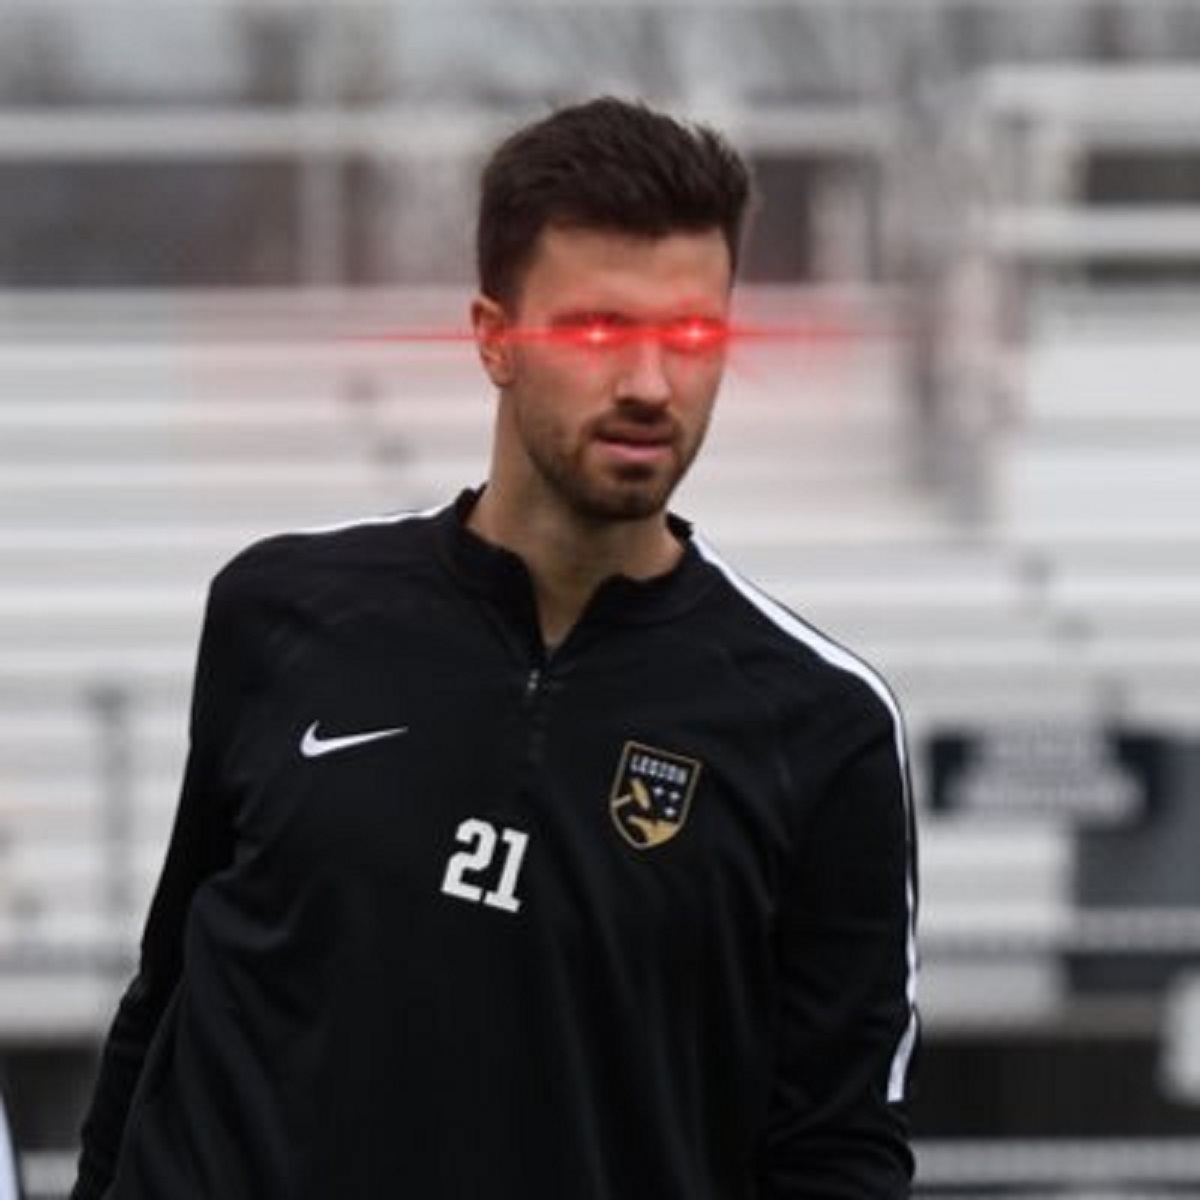 This USL Player Receives Part of His Salary in Bitcoin. Says Crypto is Sound Money